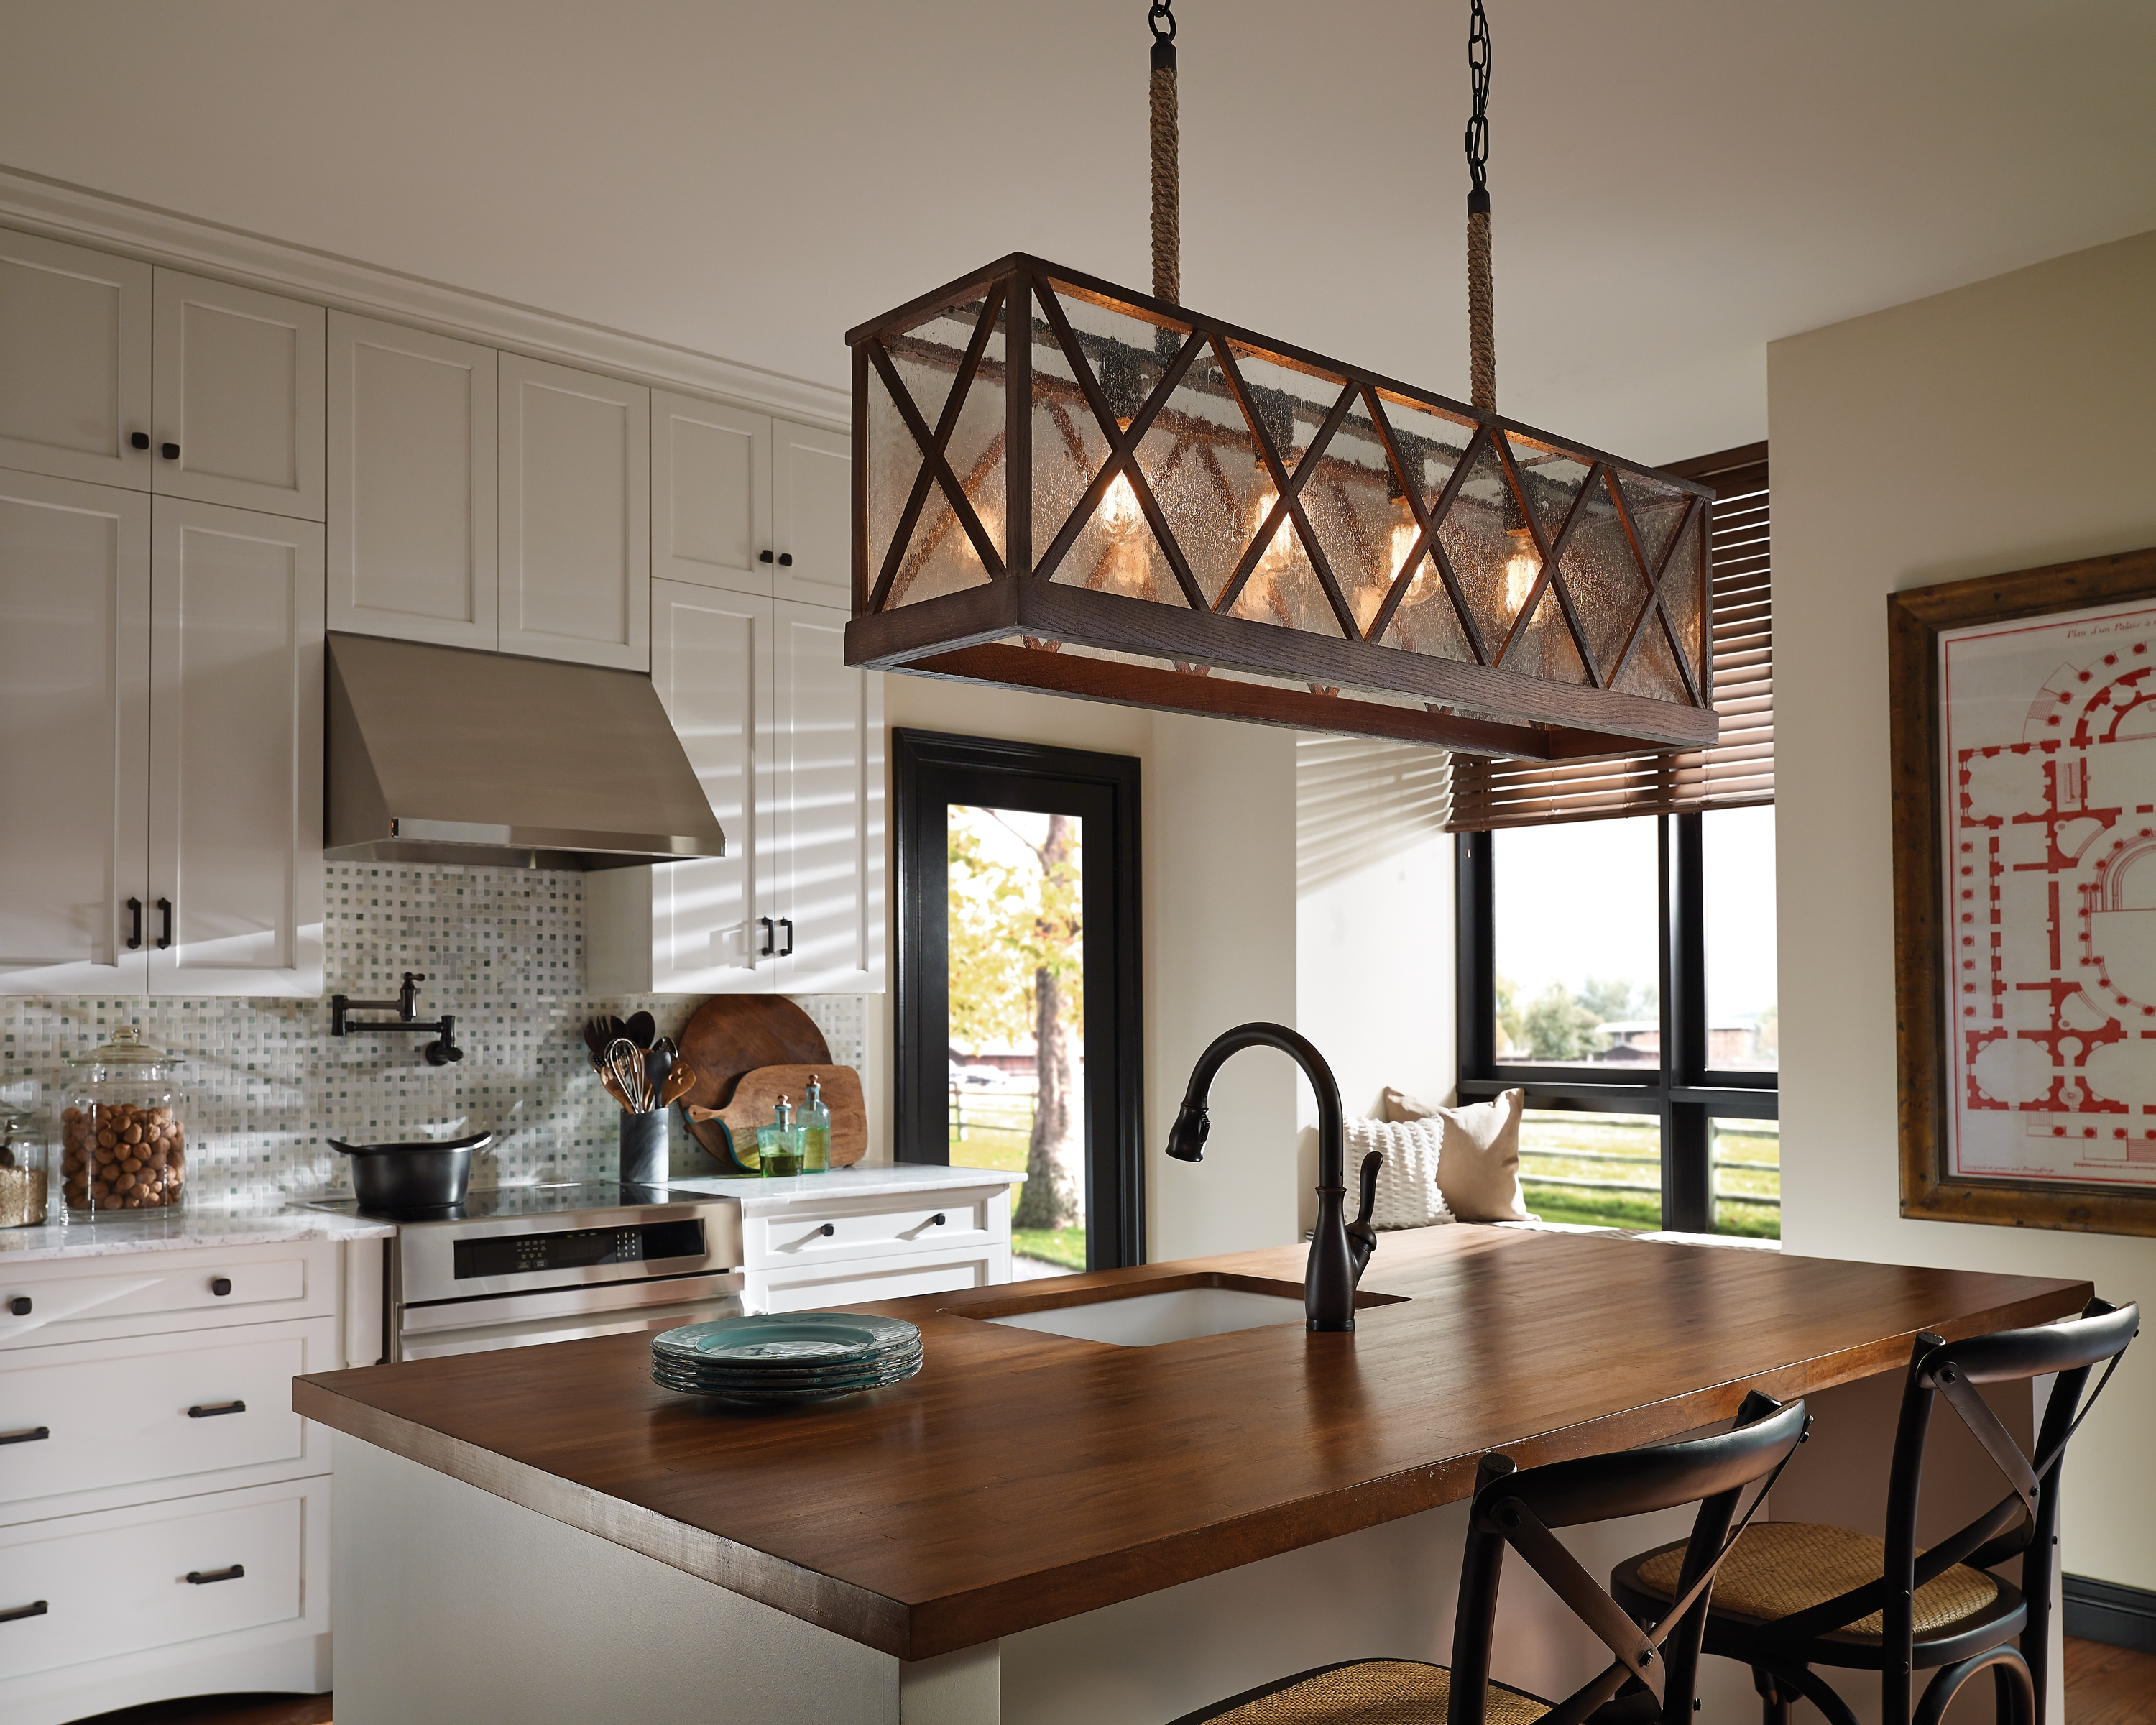 Robinson Lighting Bath Centre Change Your Living Space With Light Intended For Country Chic Chandelier (#11 of 12)